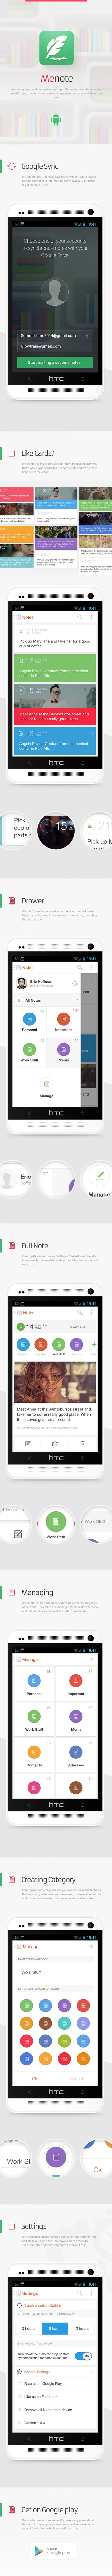 Menote - Awesome notes for your Android by Dmitriy Haraberush, via Behance